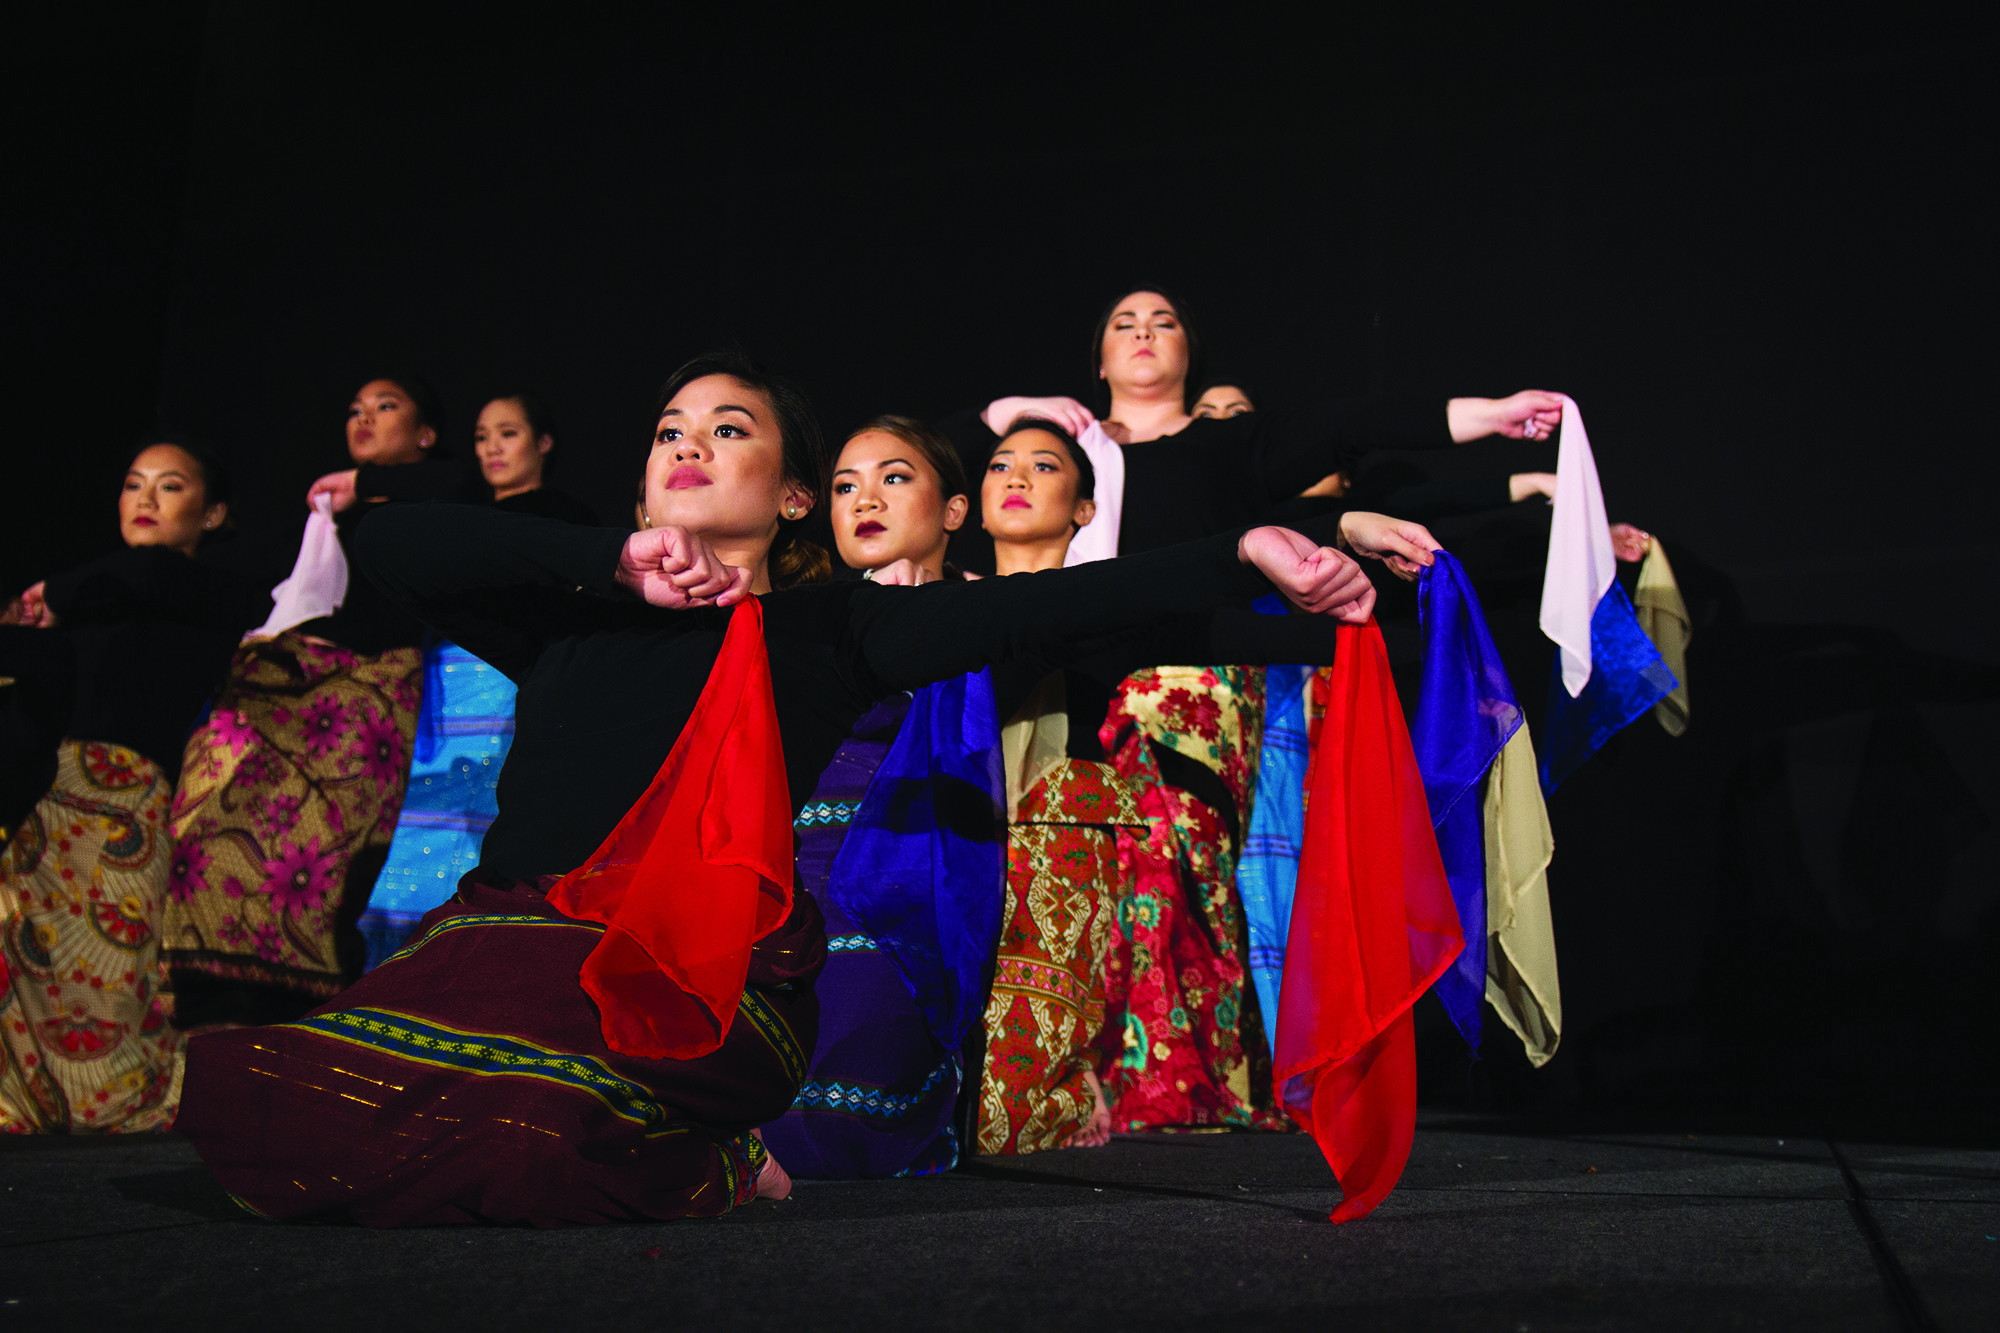 UFC's Barrio Fiesta included modern and traditional dance performances.